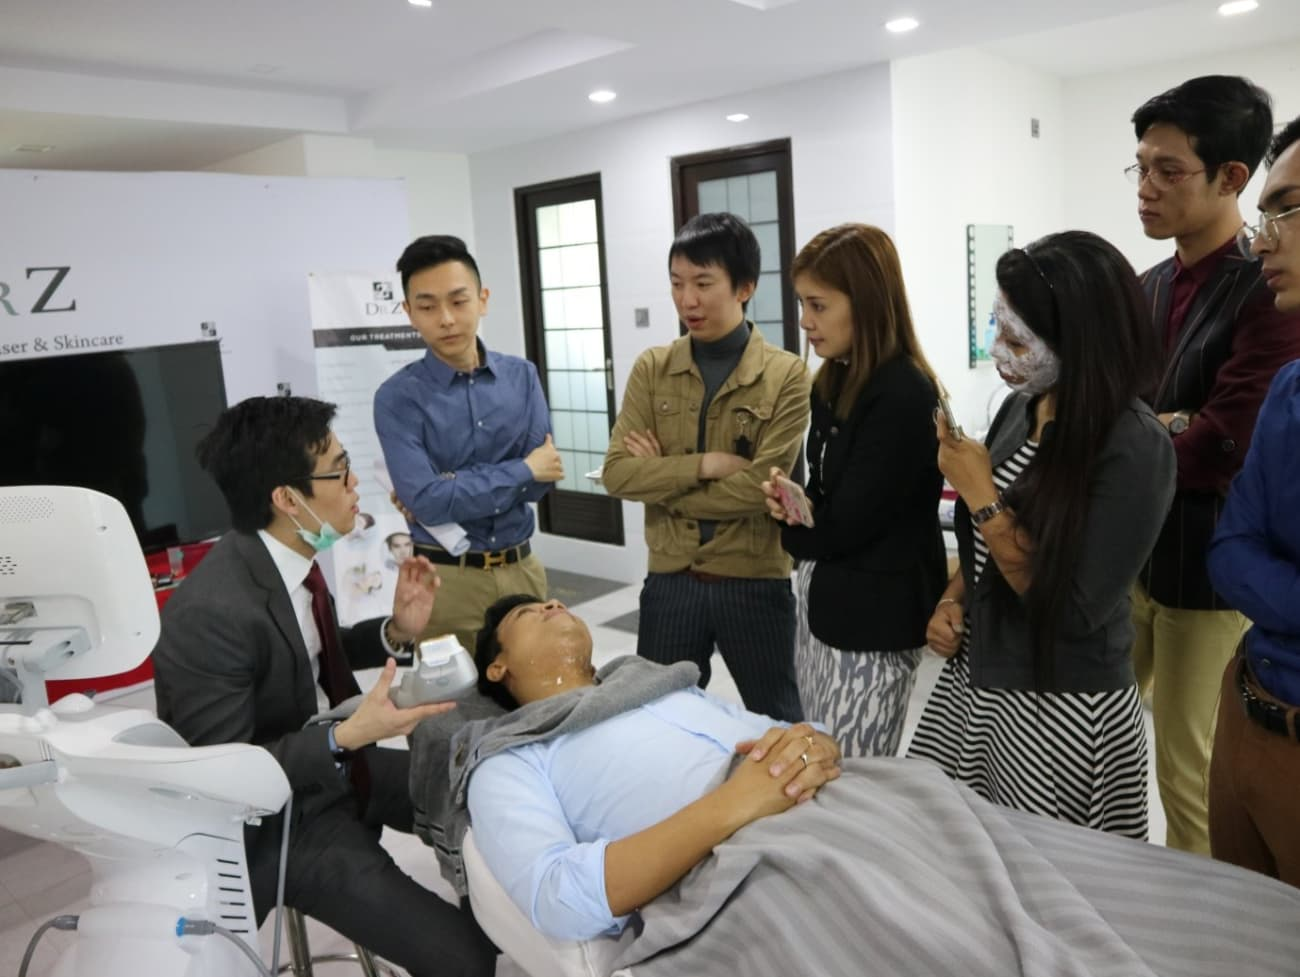 Dr CY Chua Facelift Training Session in Yangon